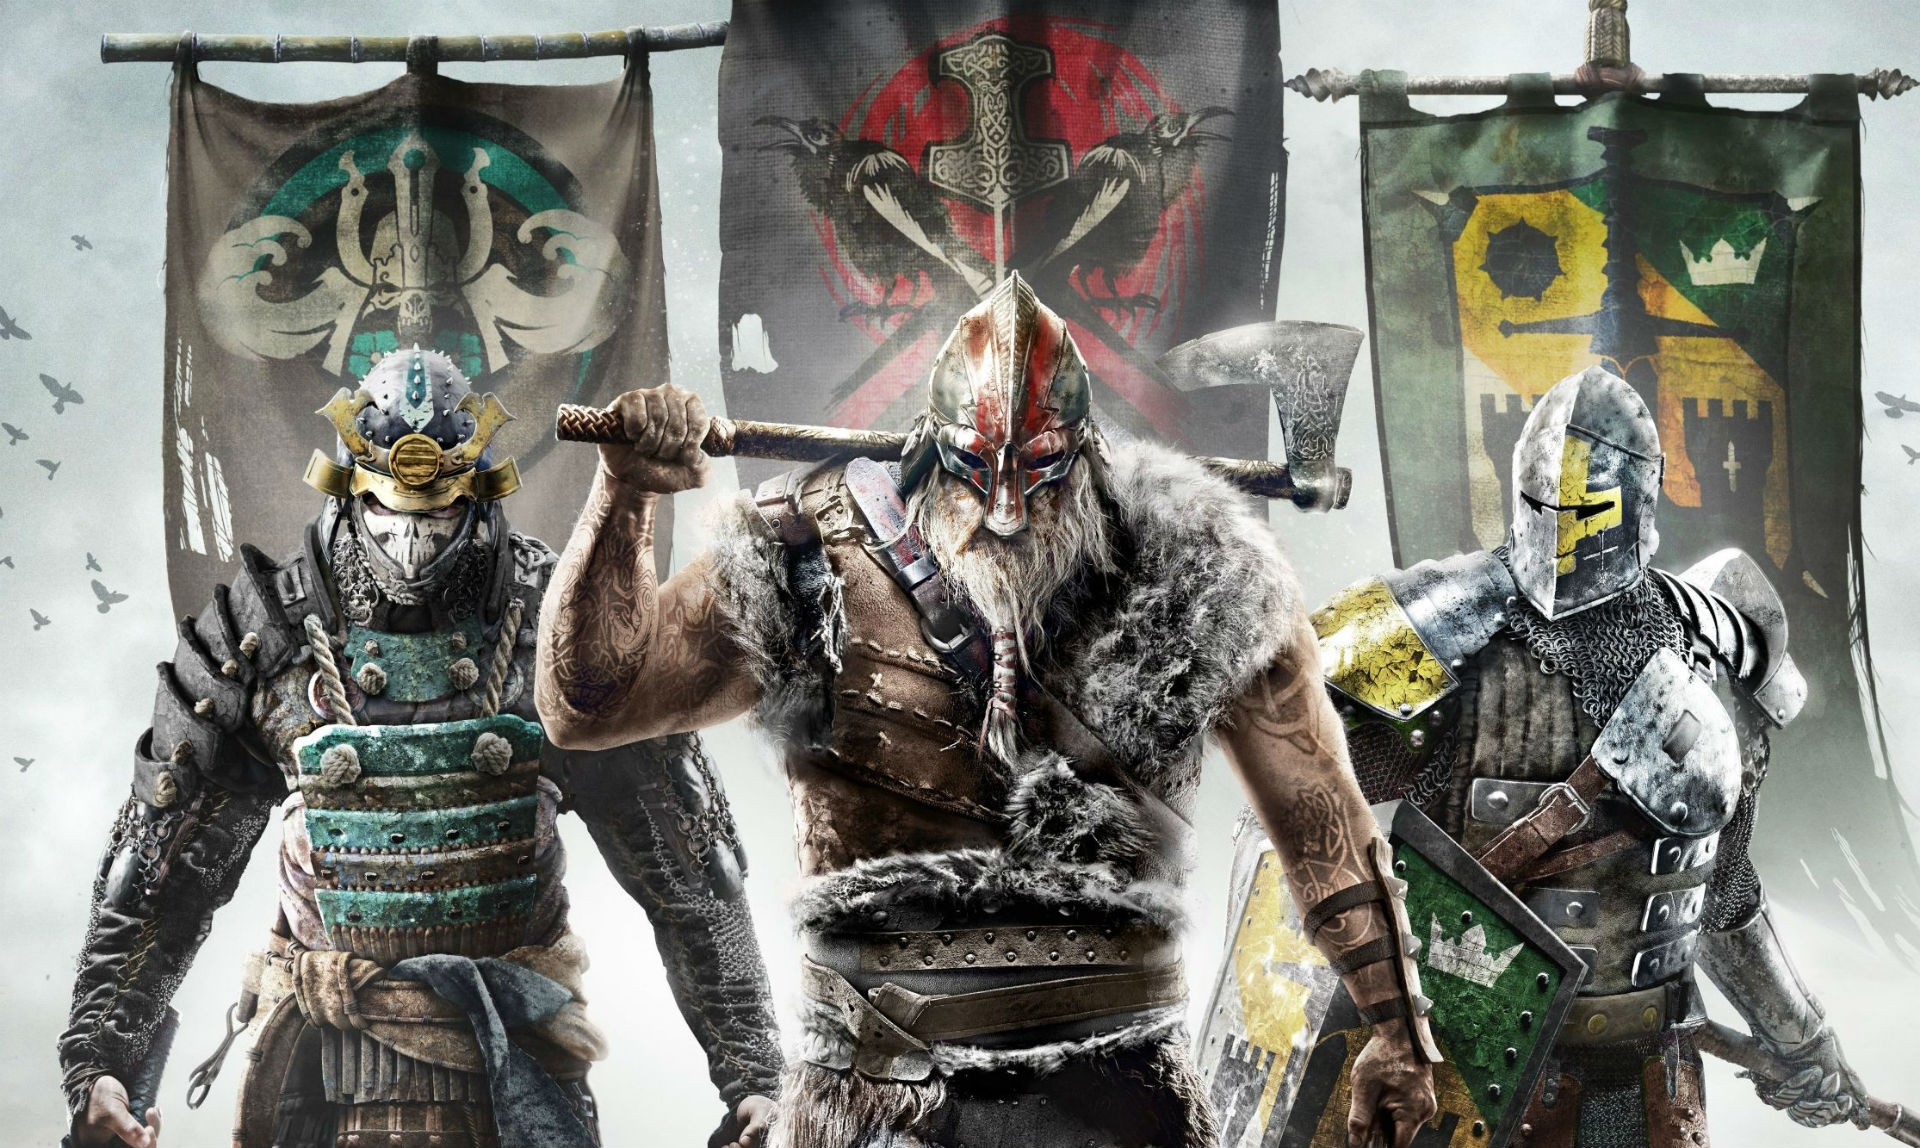 For Honor Viking Wallpaper: Download 1920x1148 For Honor, Ubisoft, Video Games